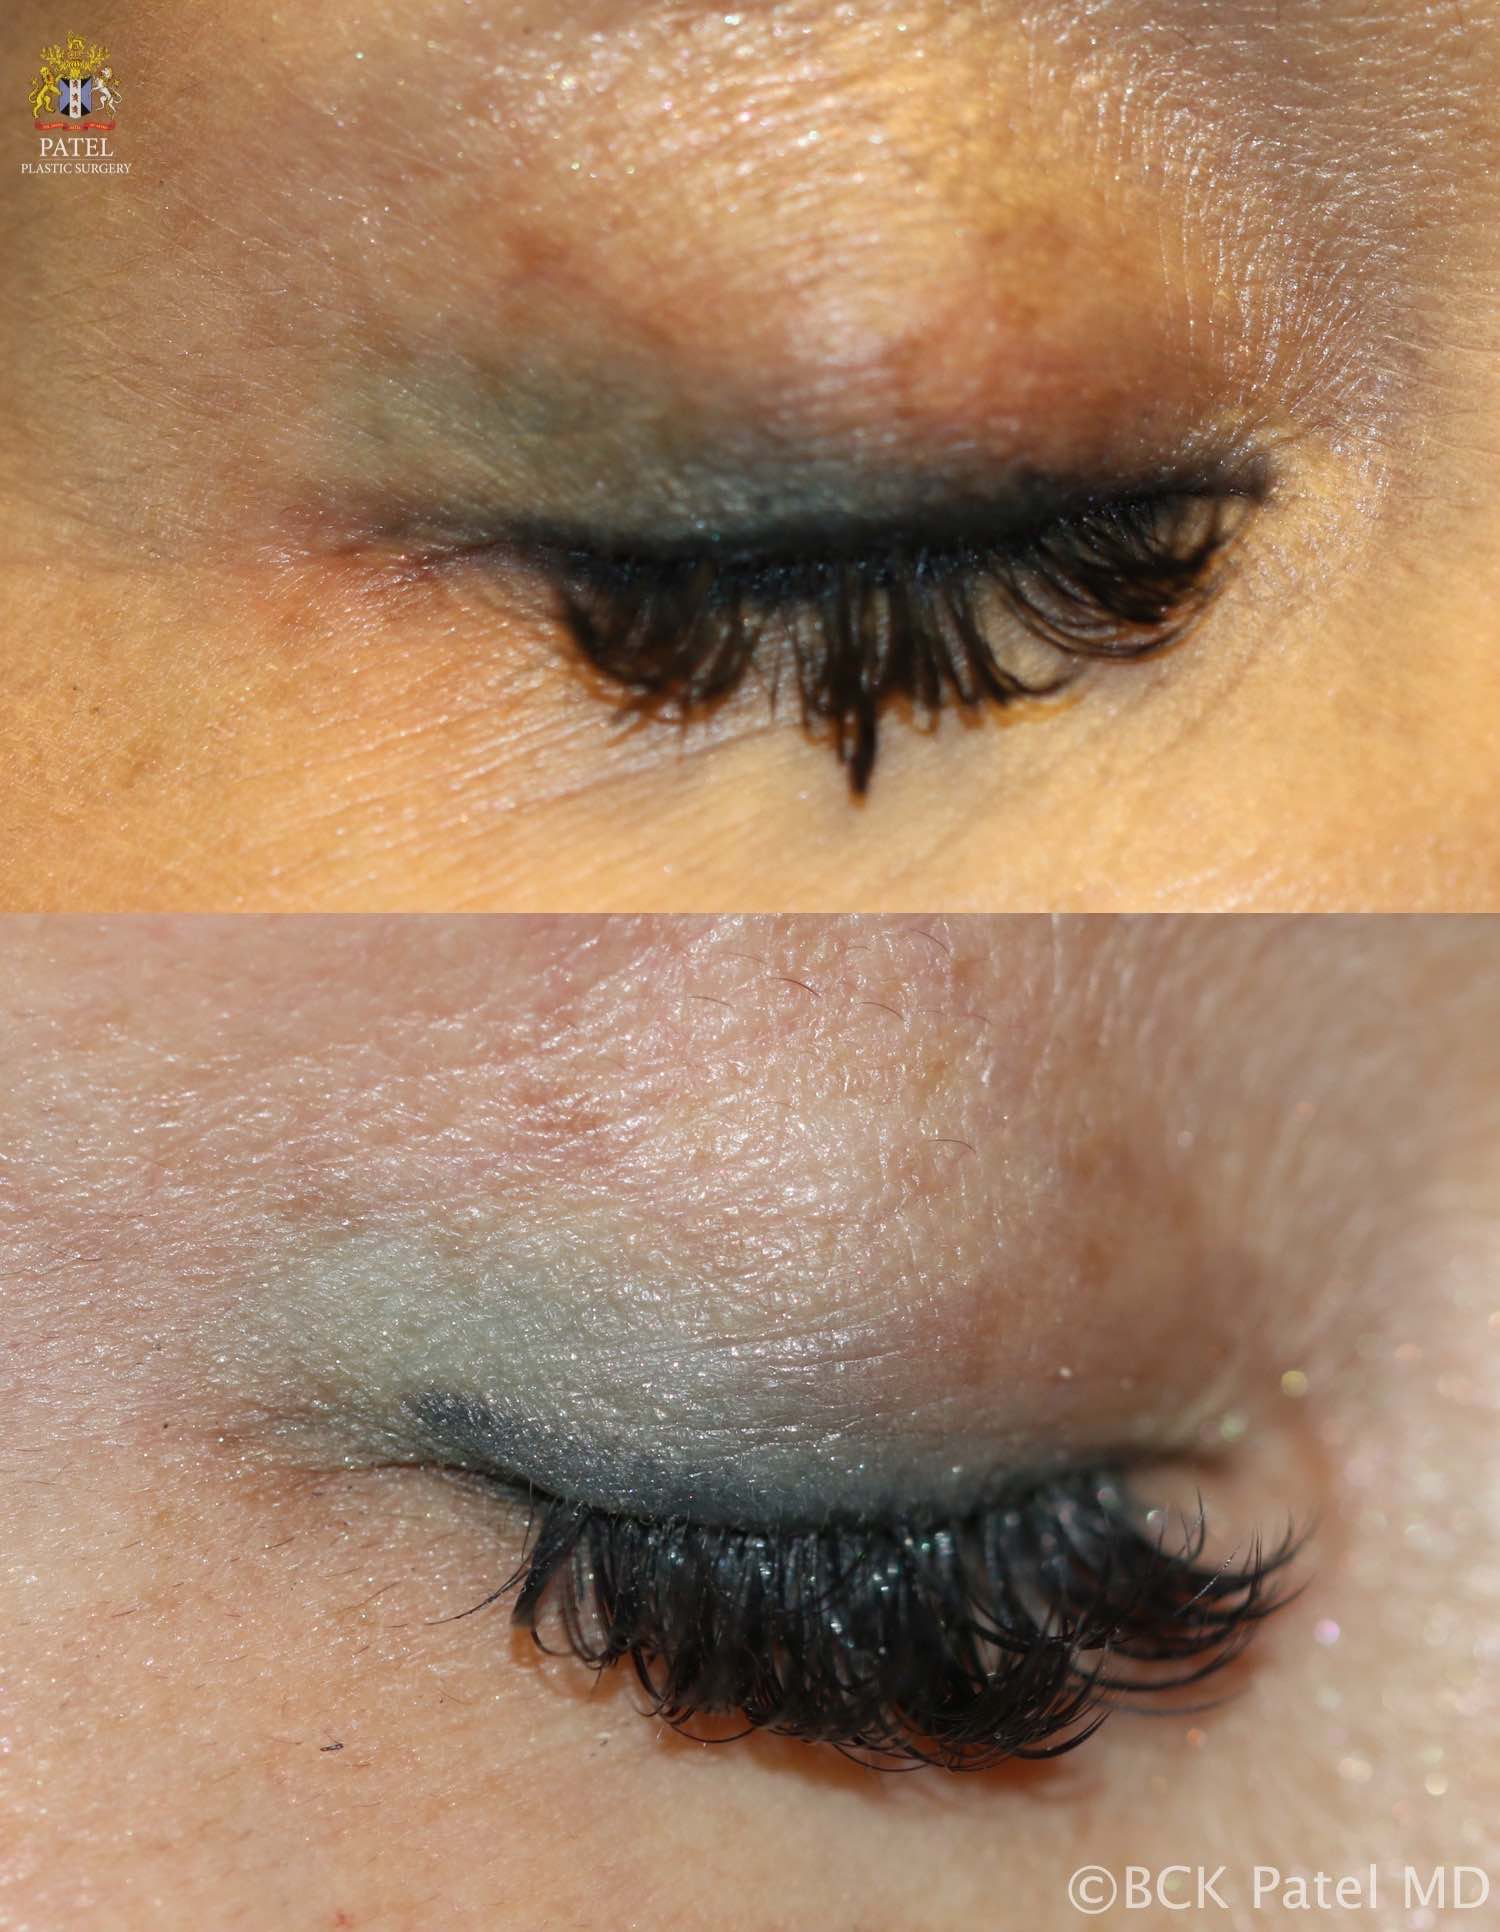 englishsurgeon.com. Photos showing an improvement in the leaked eyelid tattoo to improve the definition. BCK Patel MD, FRCS, Salt Lake City, St George